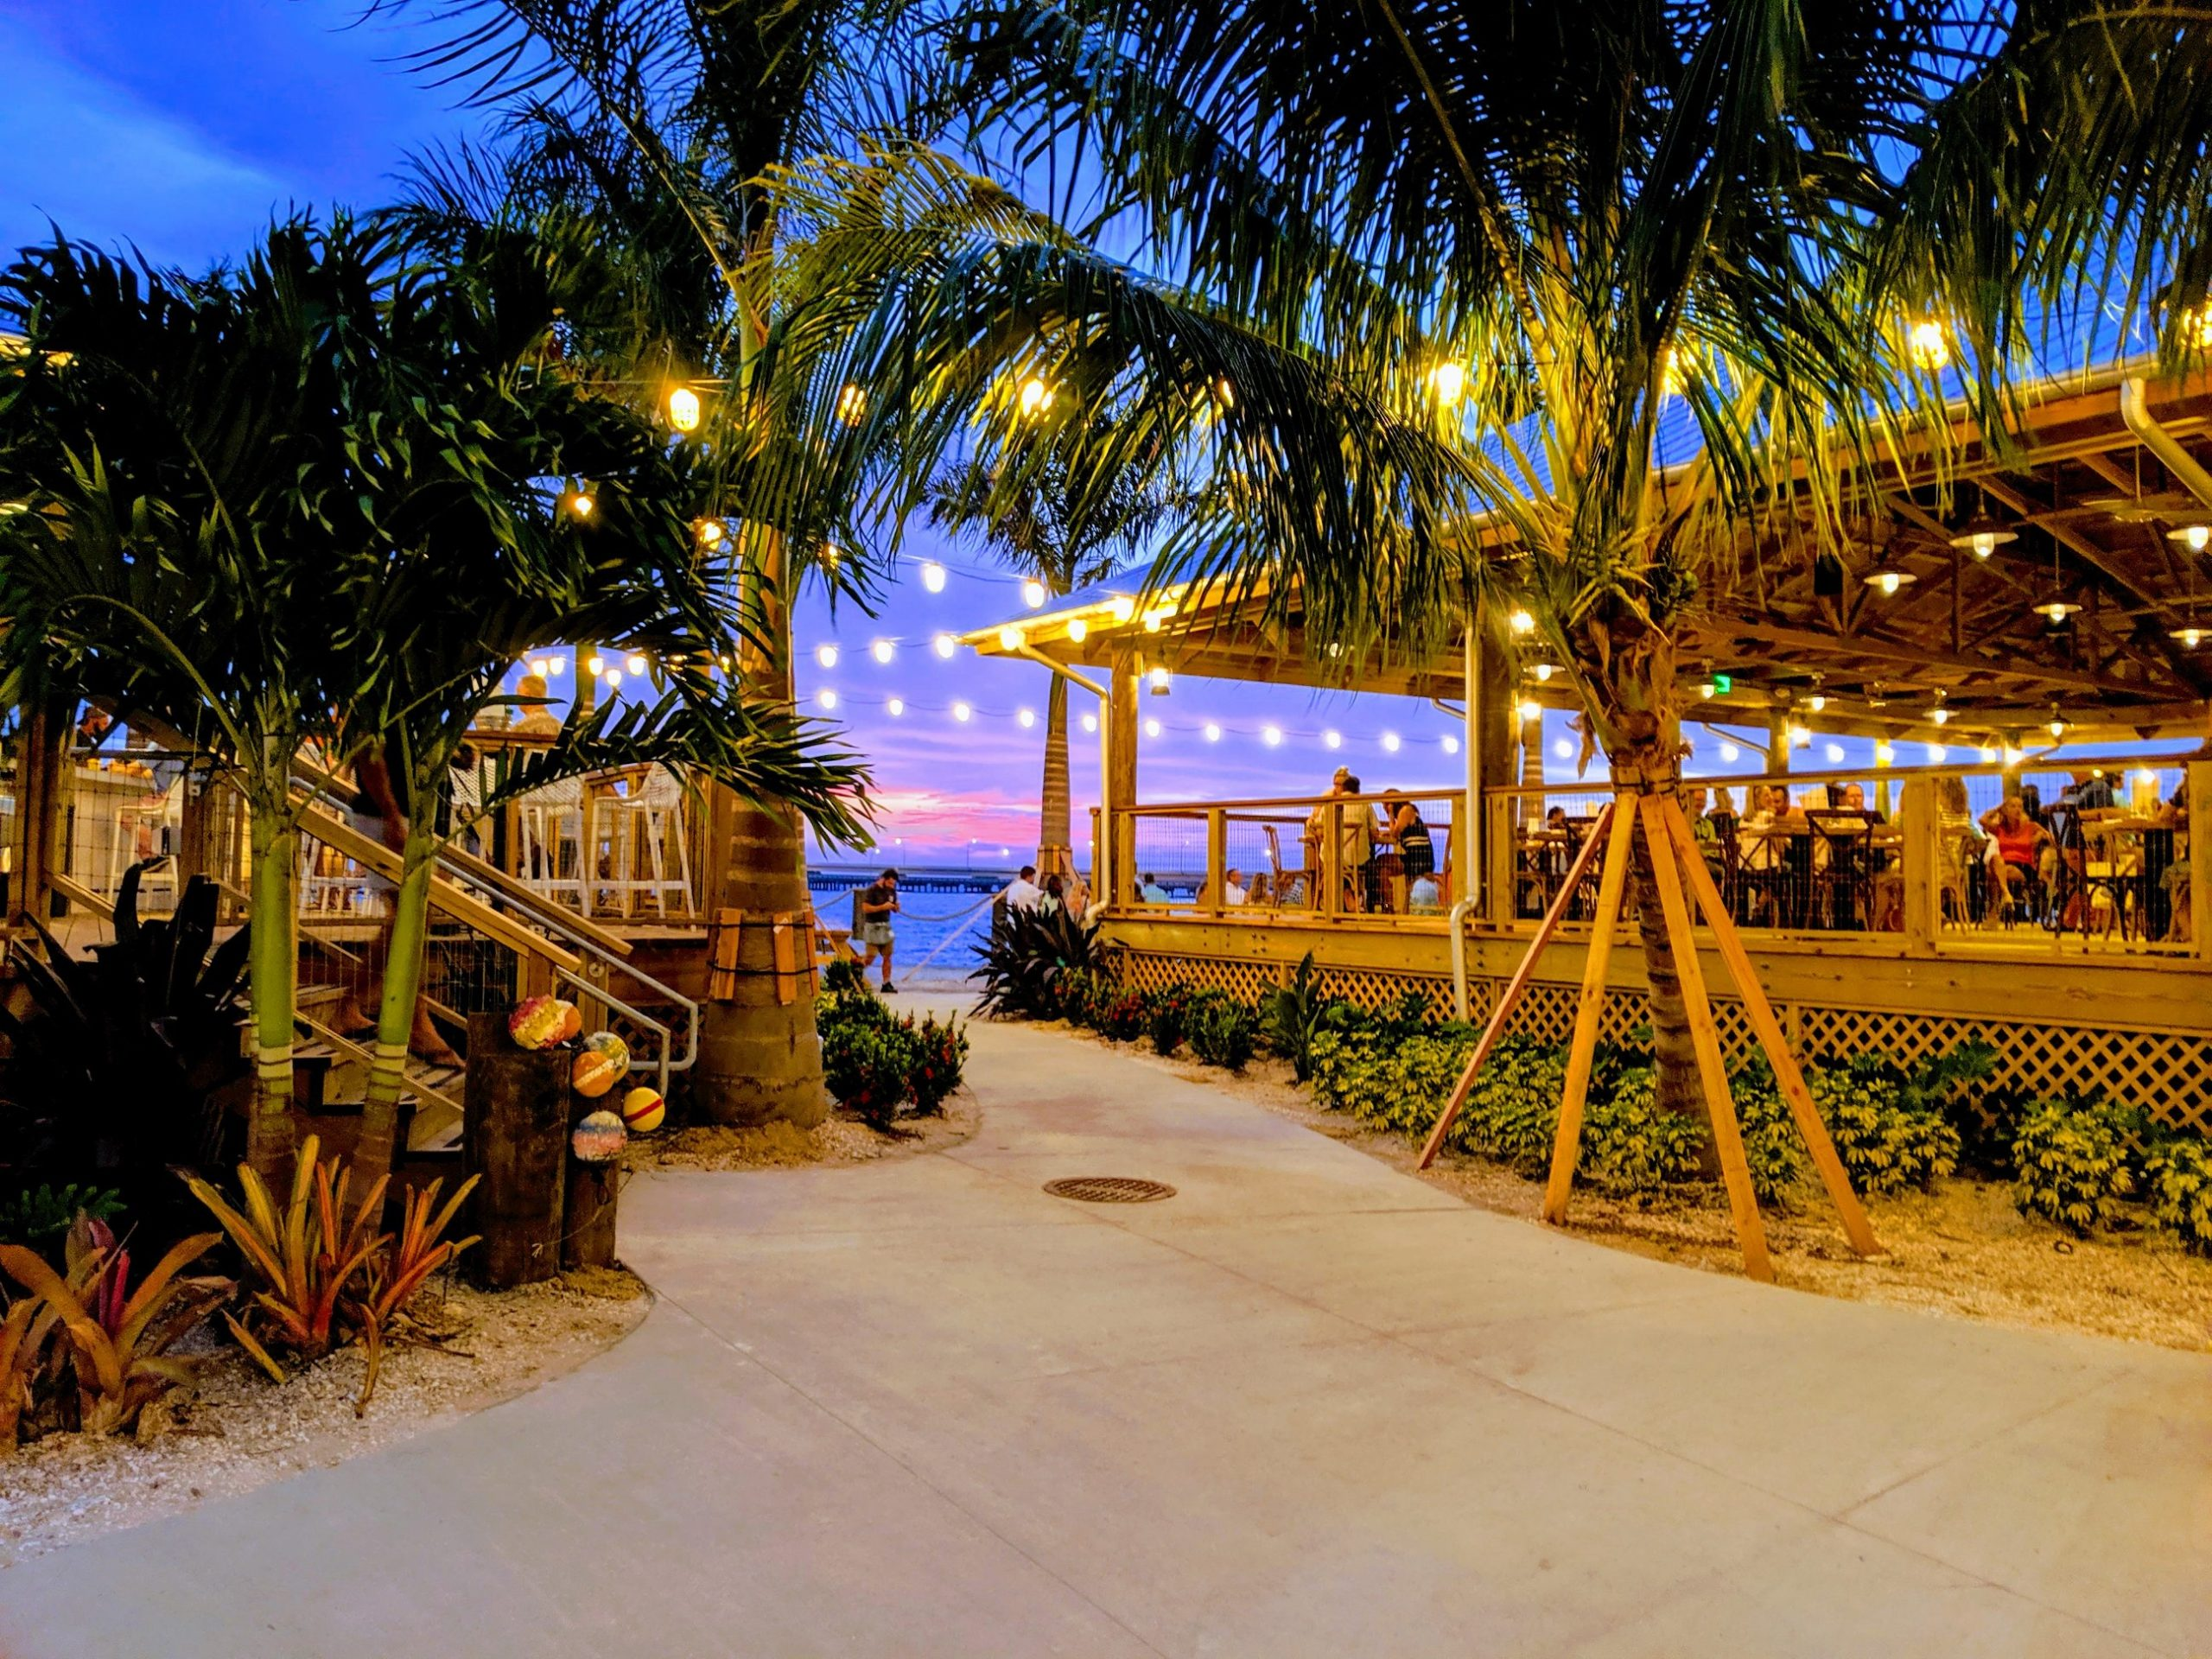 The Salt Shack In Tampa, Florida Offers Open-Air Dining On The Bay